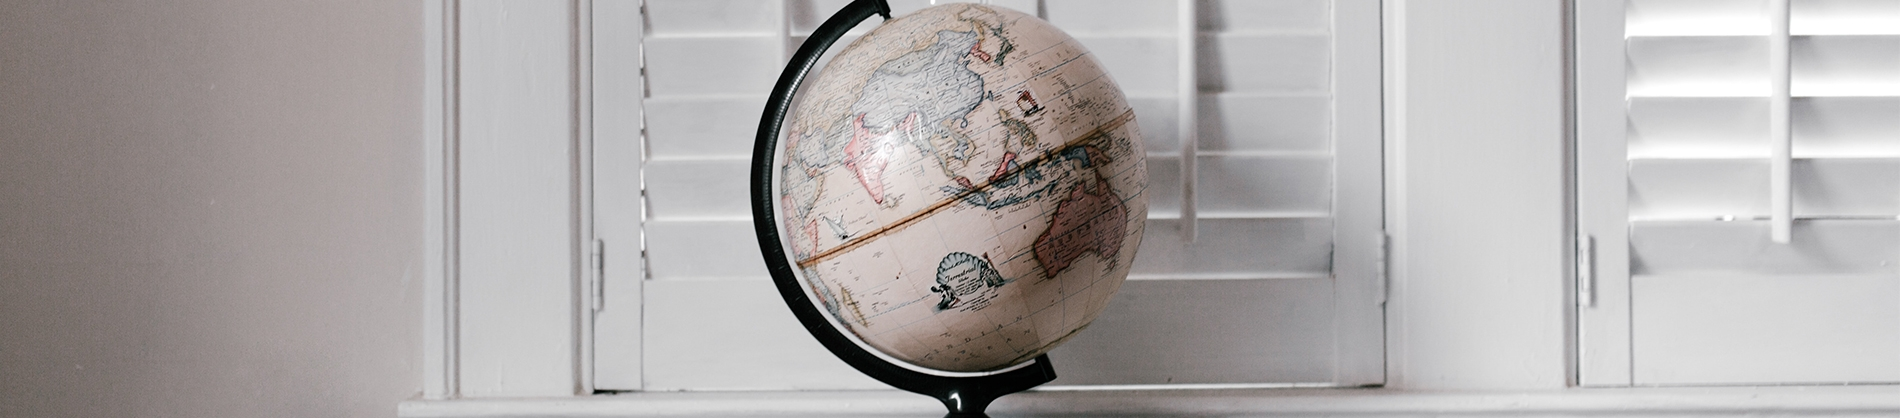 A globe sat on a shelf with white shutters behind